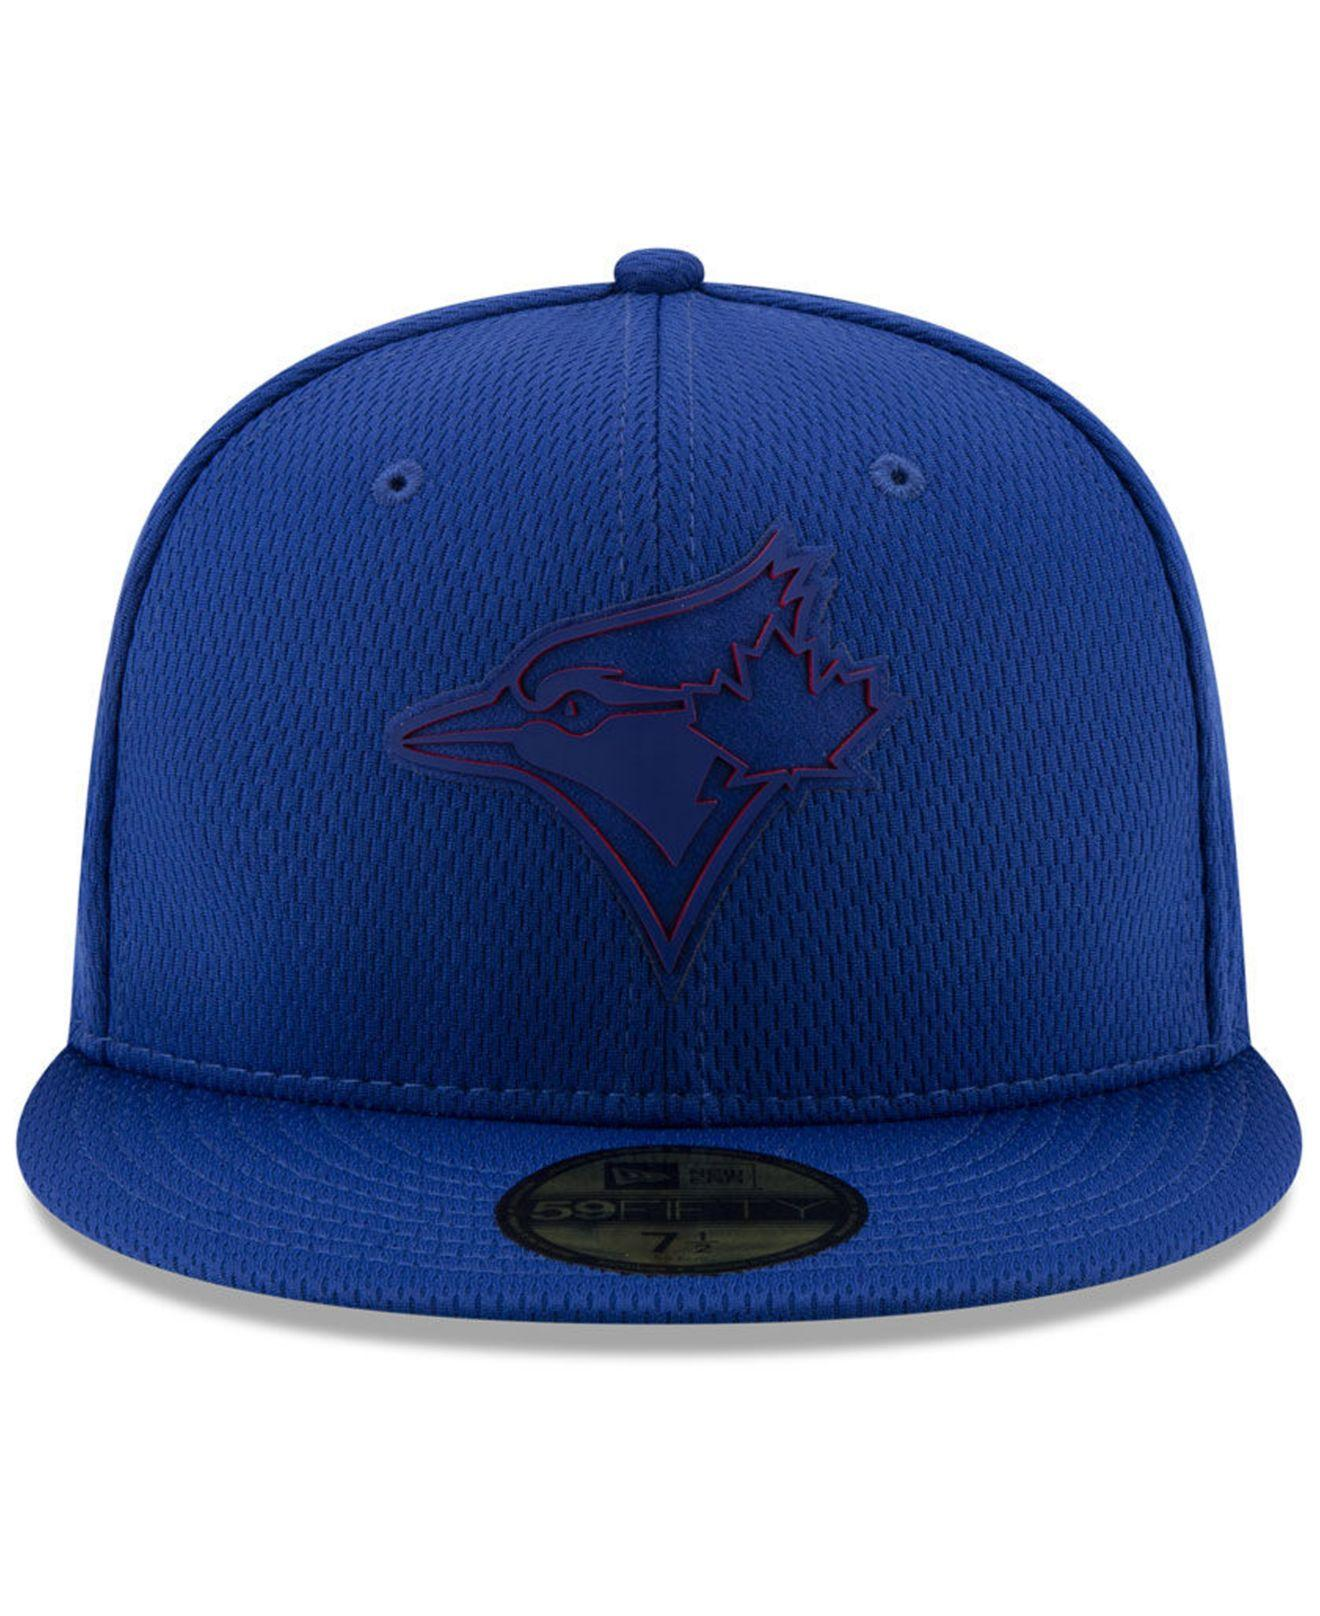 Toronto Blue Jays Wool Camo Black MLB New Era 59Fifty Fitted Hat Cap Brown